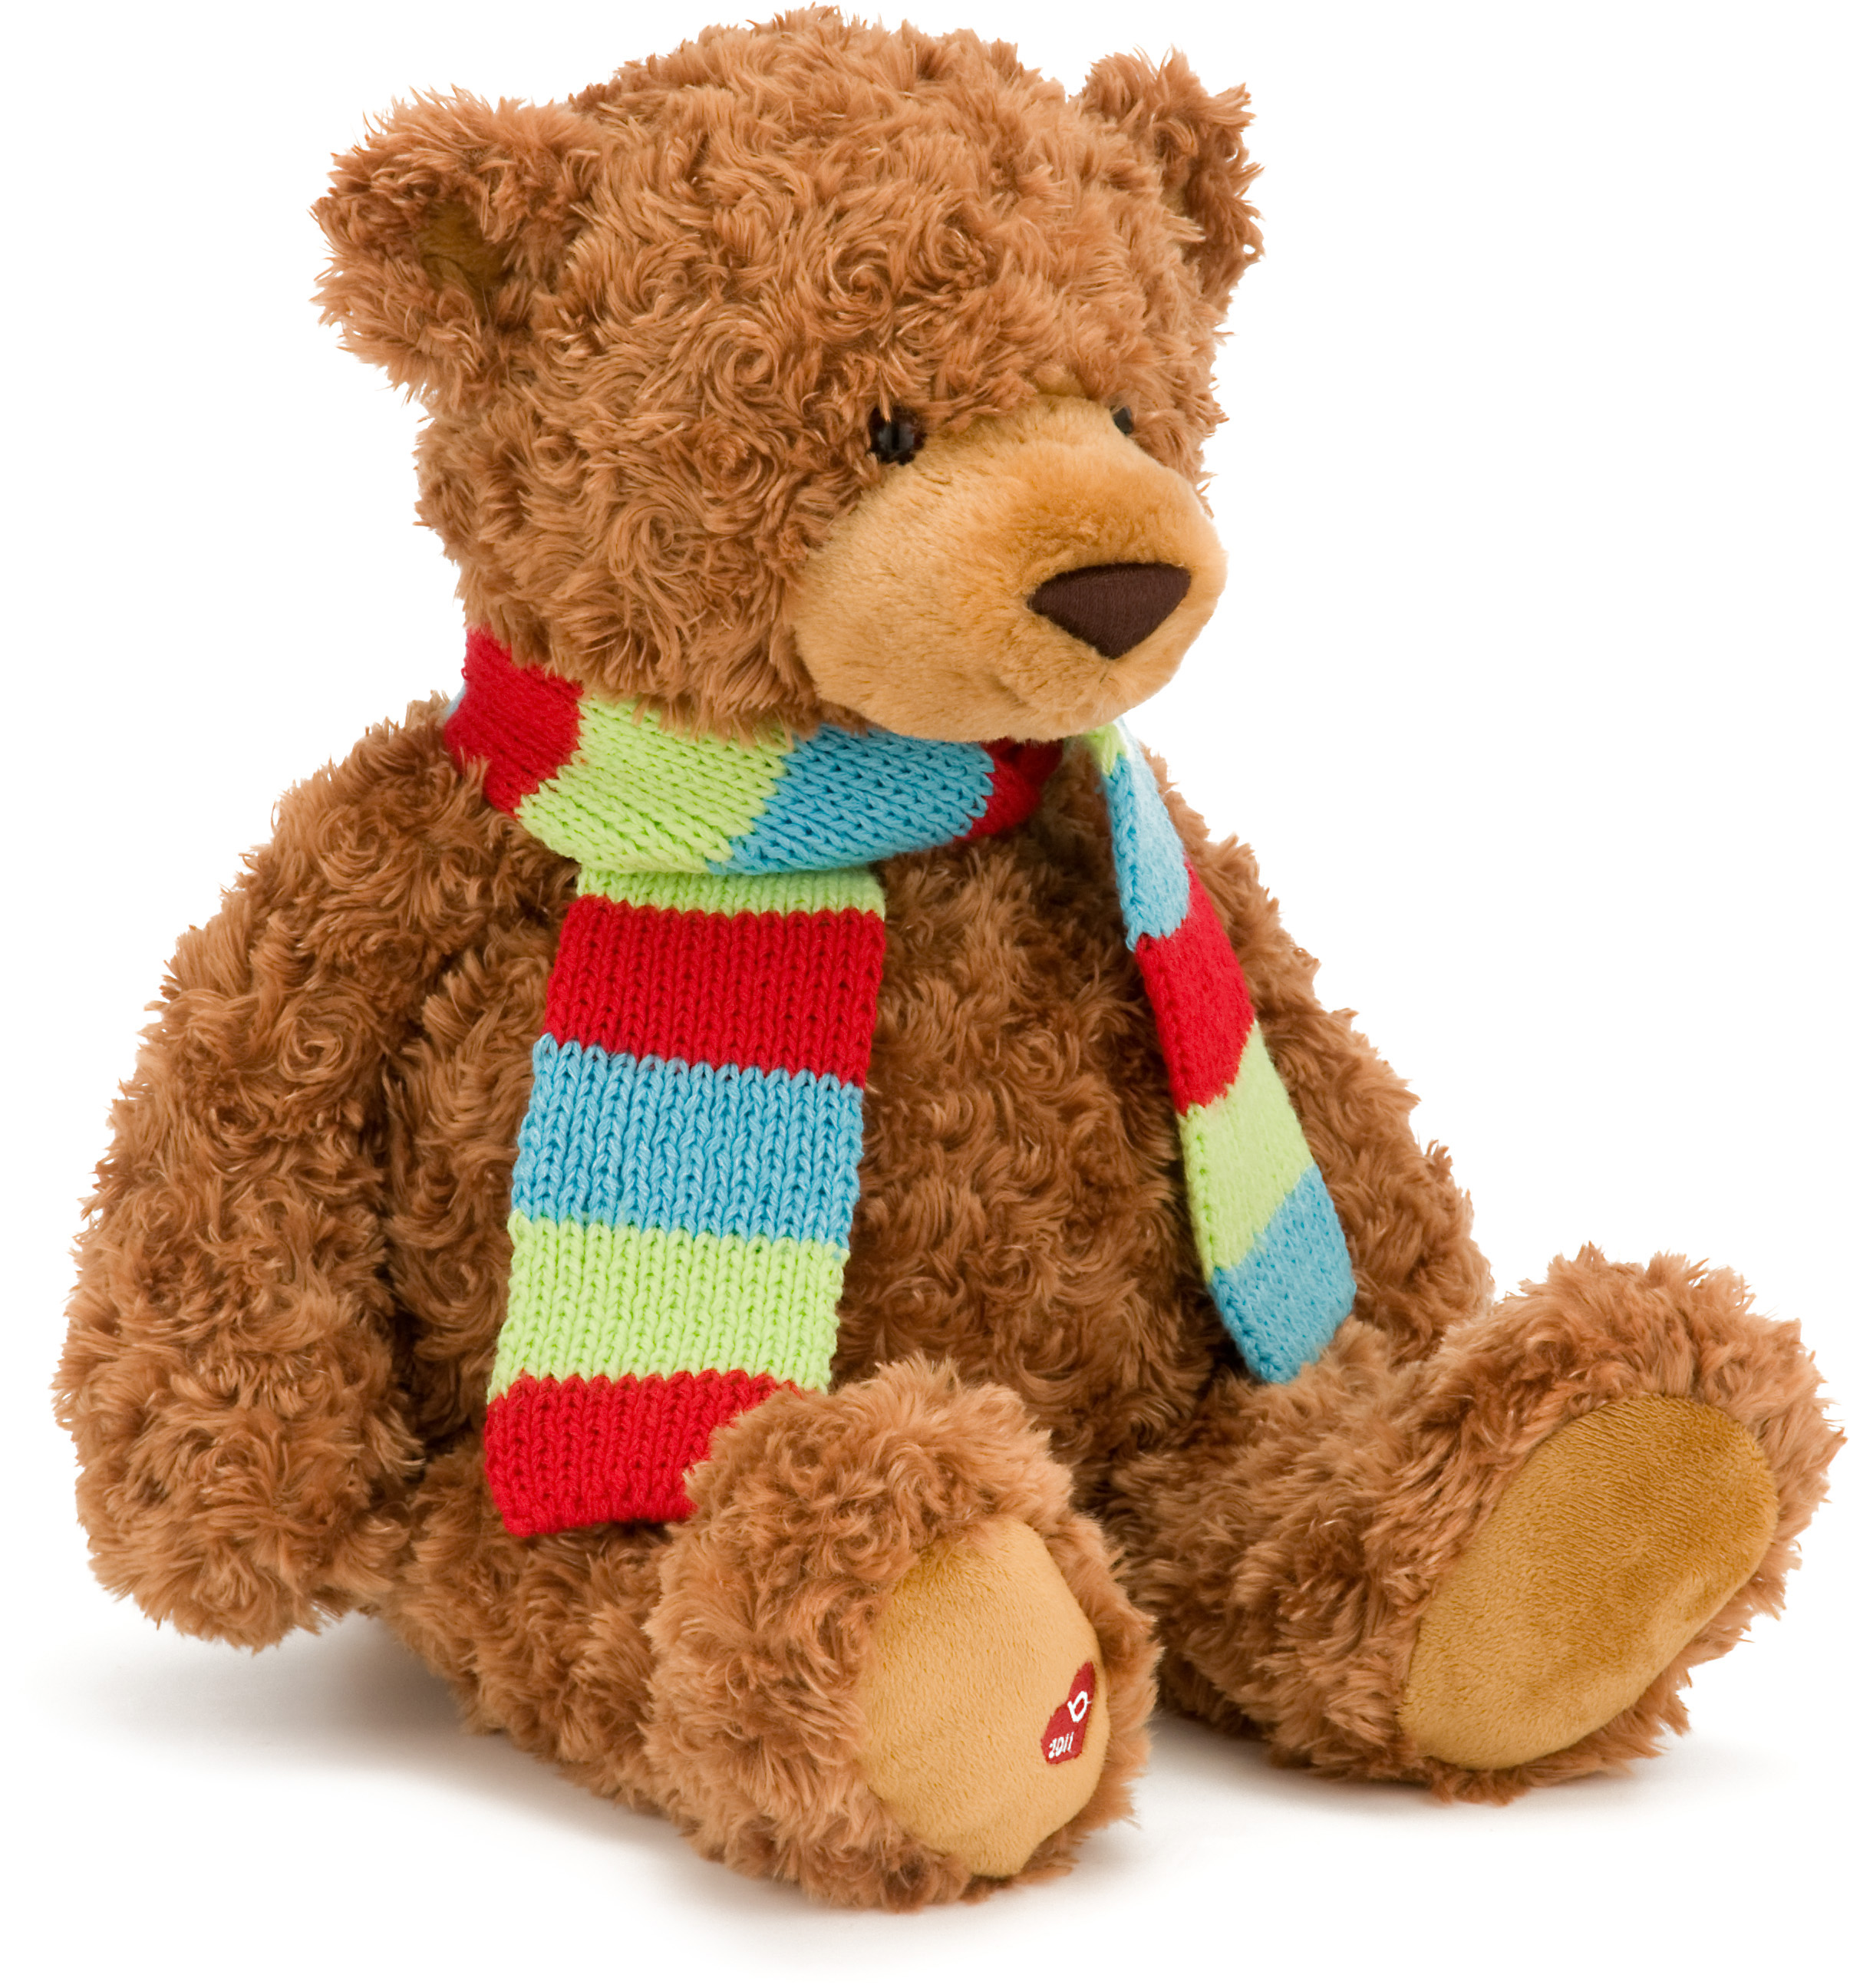 bloomingdales-little-brown-bear-gift